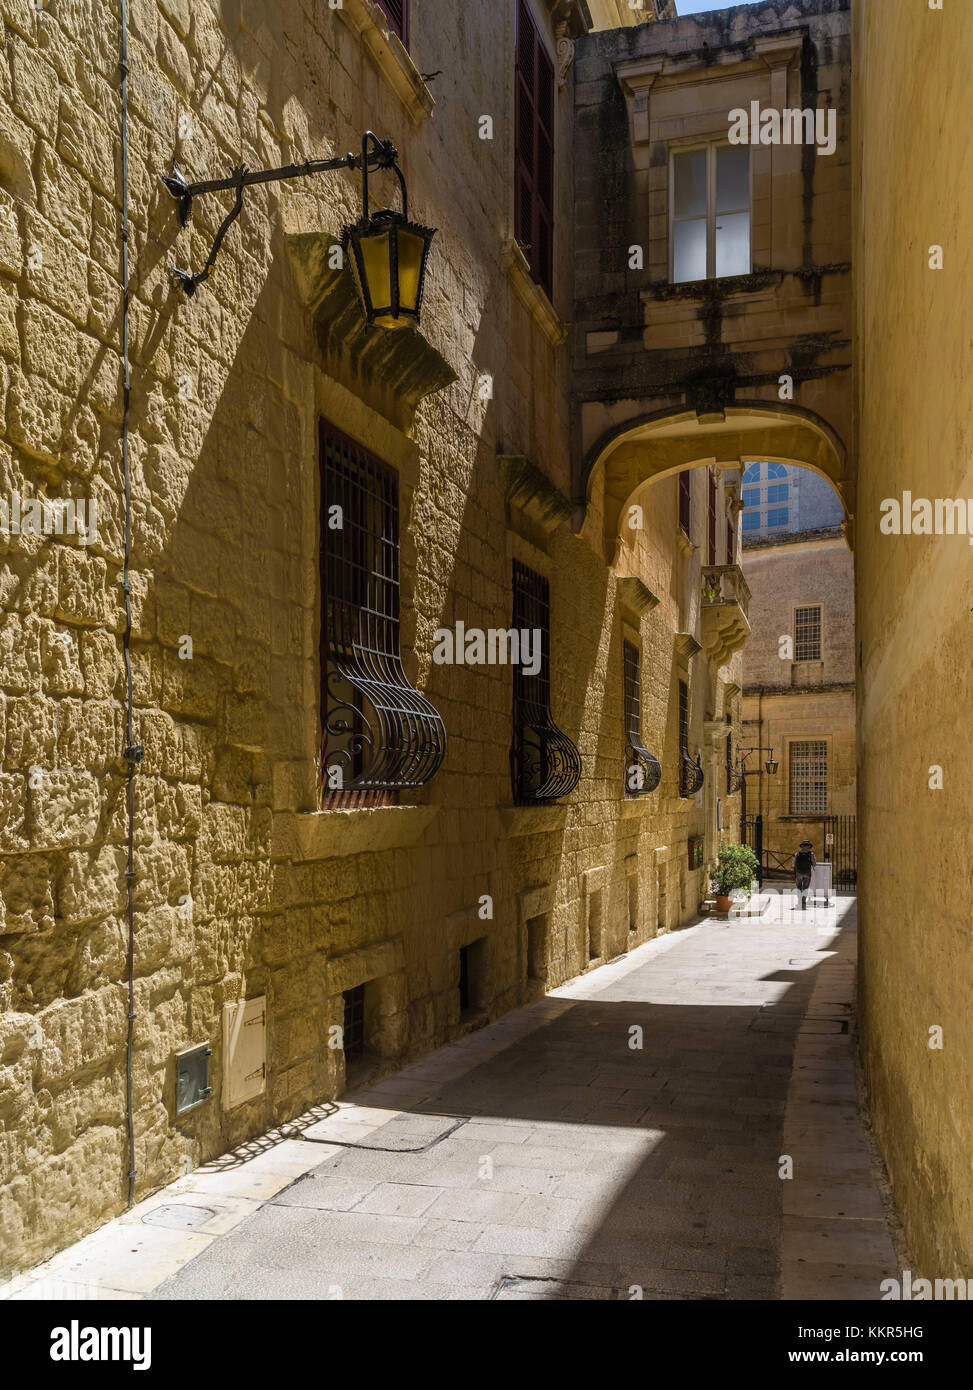 Picturesque lane in old capital of Malta, Mdina - Stock Image